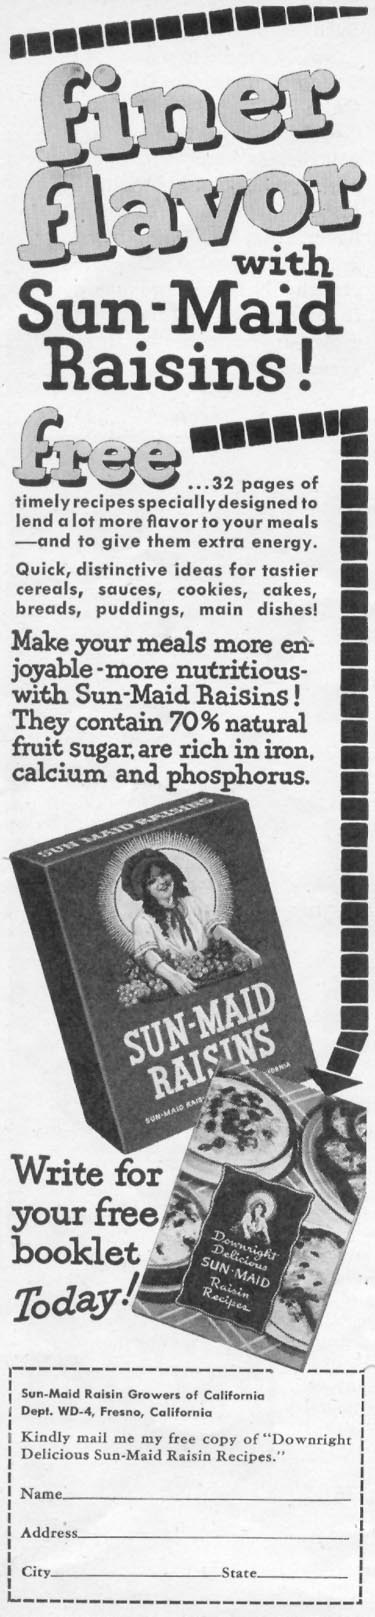 SUN-MAID RAISINS WOMAN'S DAY 05/01/1947 p. 70